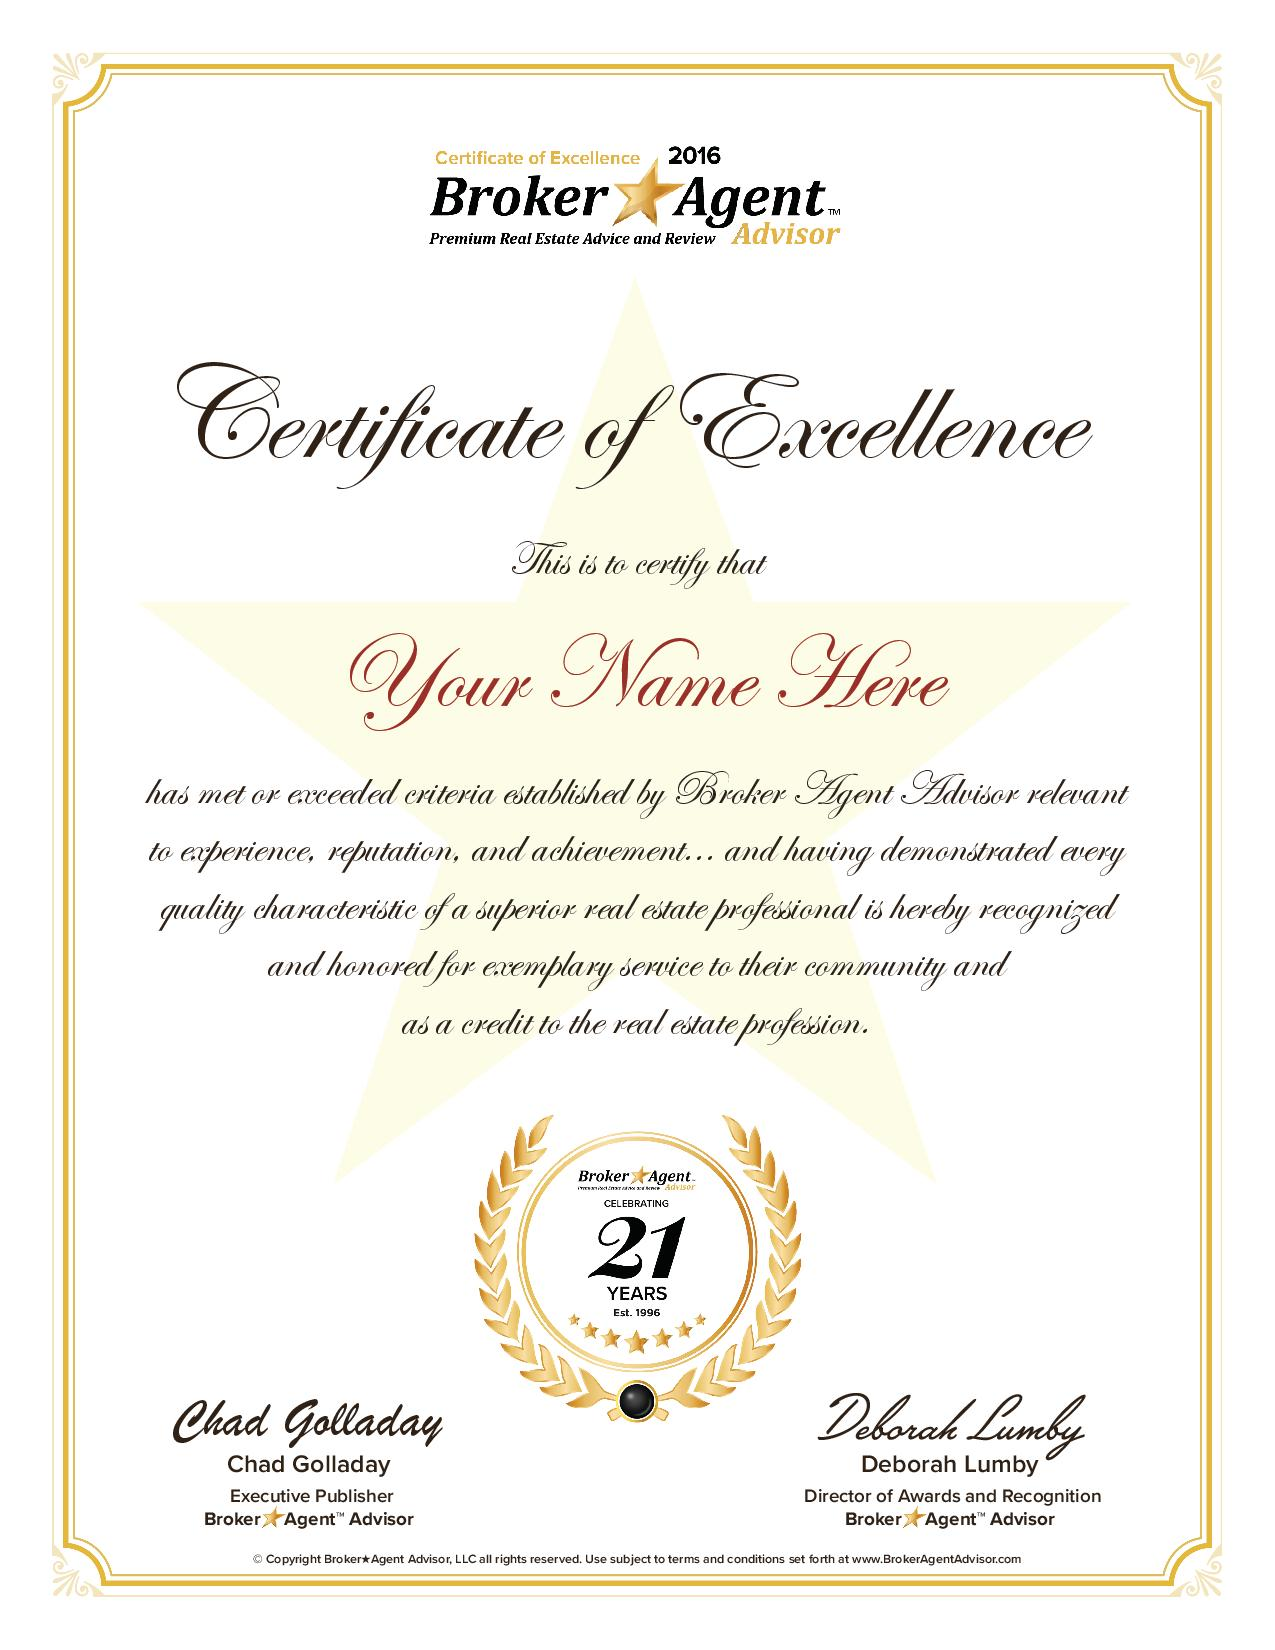 Real estate awards brokeragent advisor available to industry veterans and rookies alike 1betcityfo Image collections